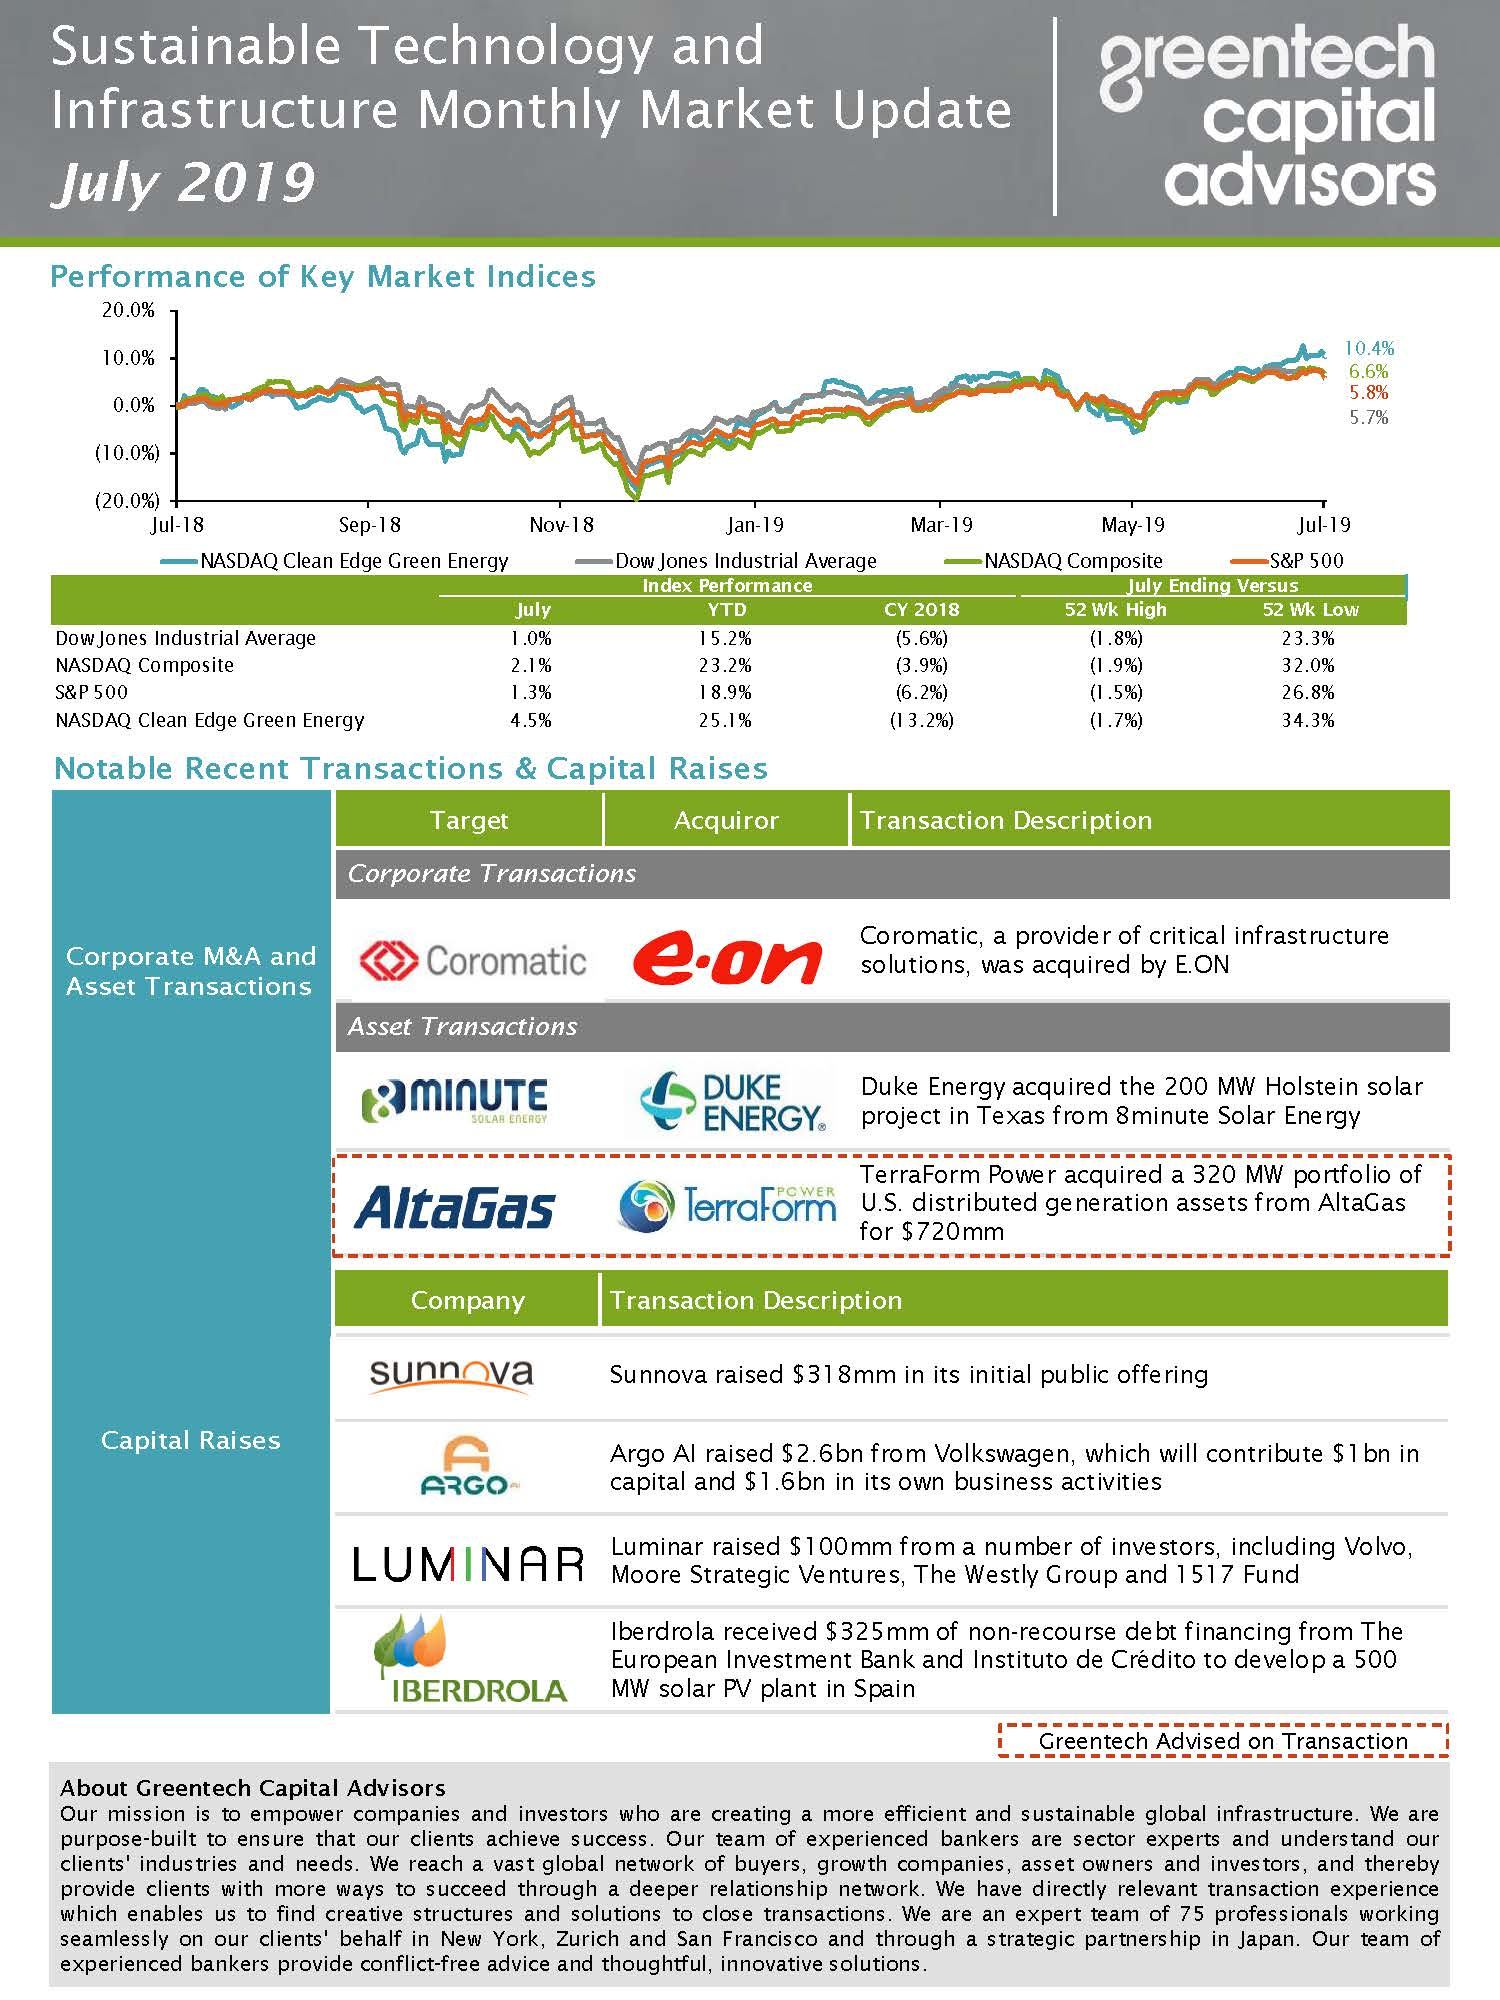 Sustainable Investing Monthly Market Update - July 2019